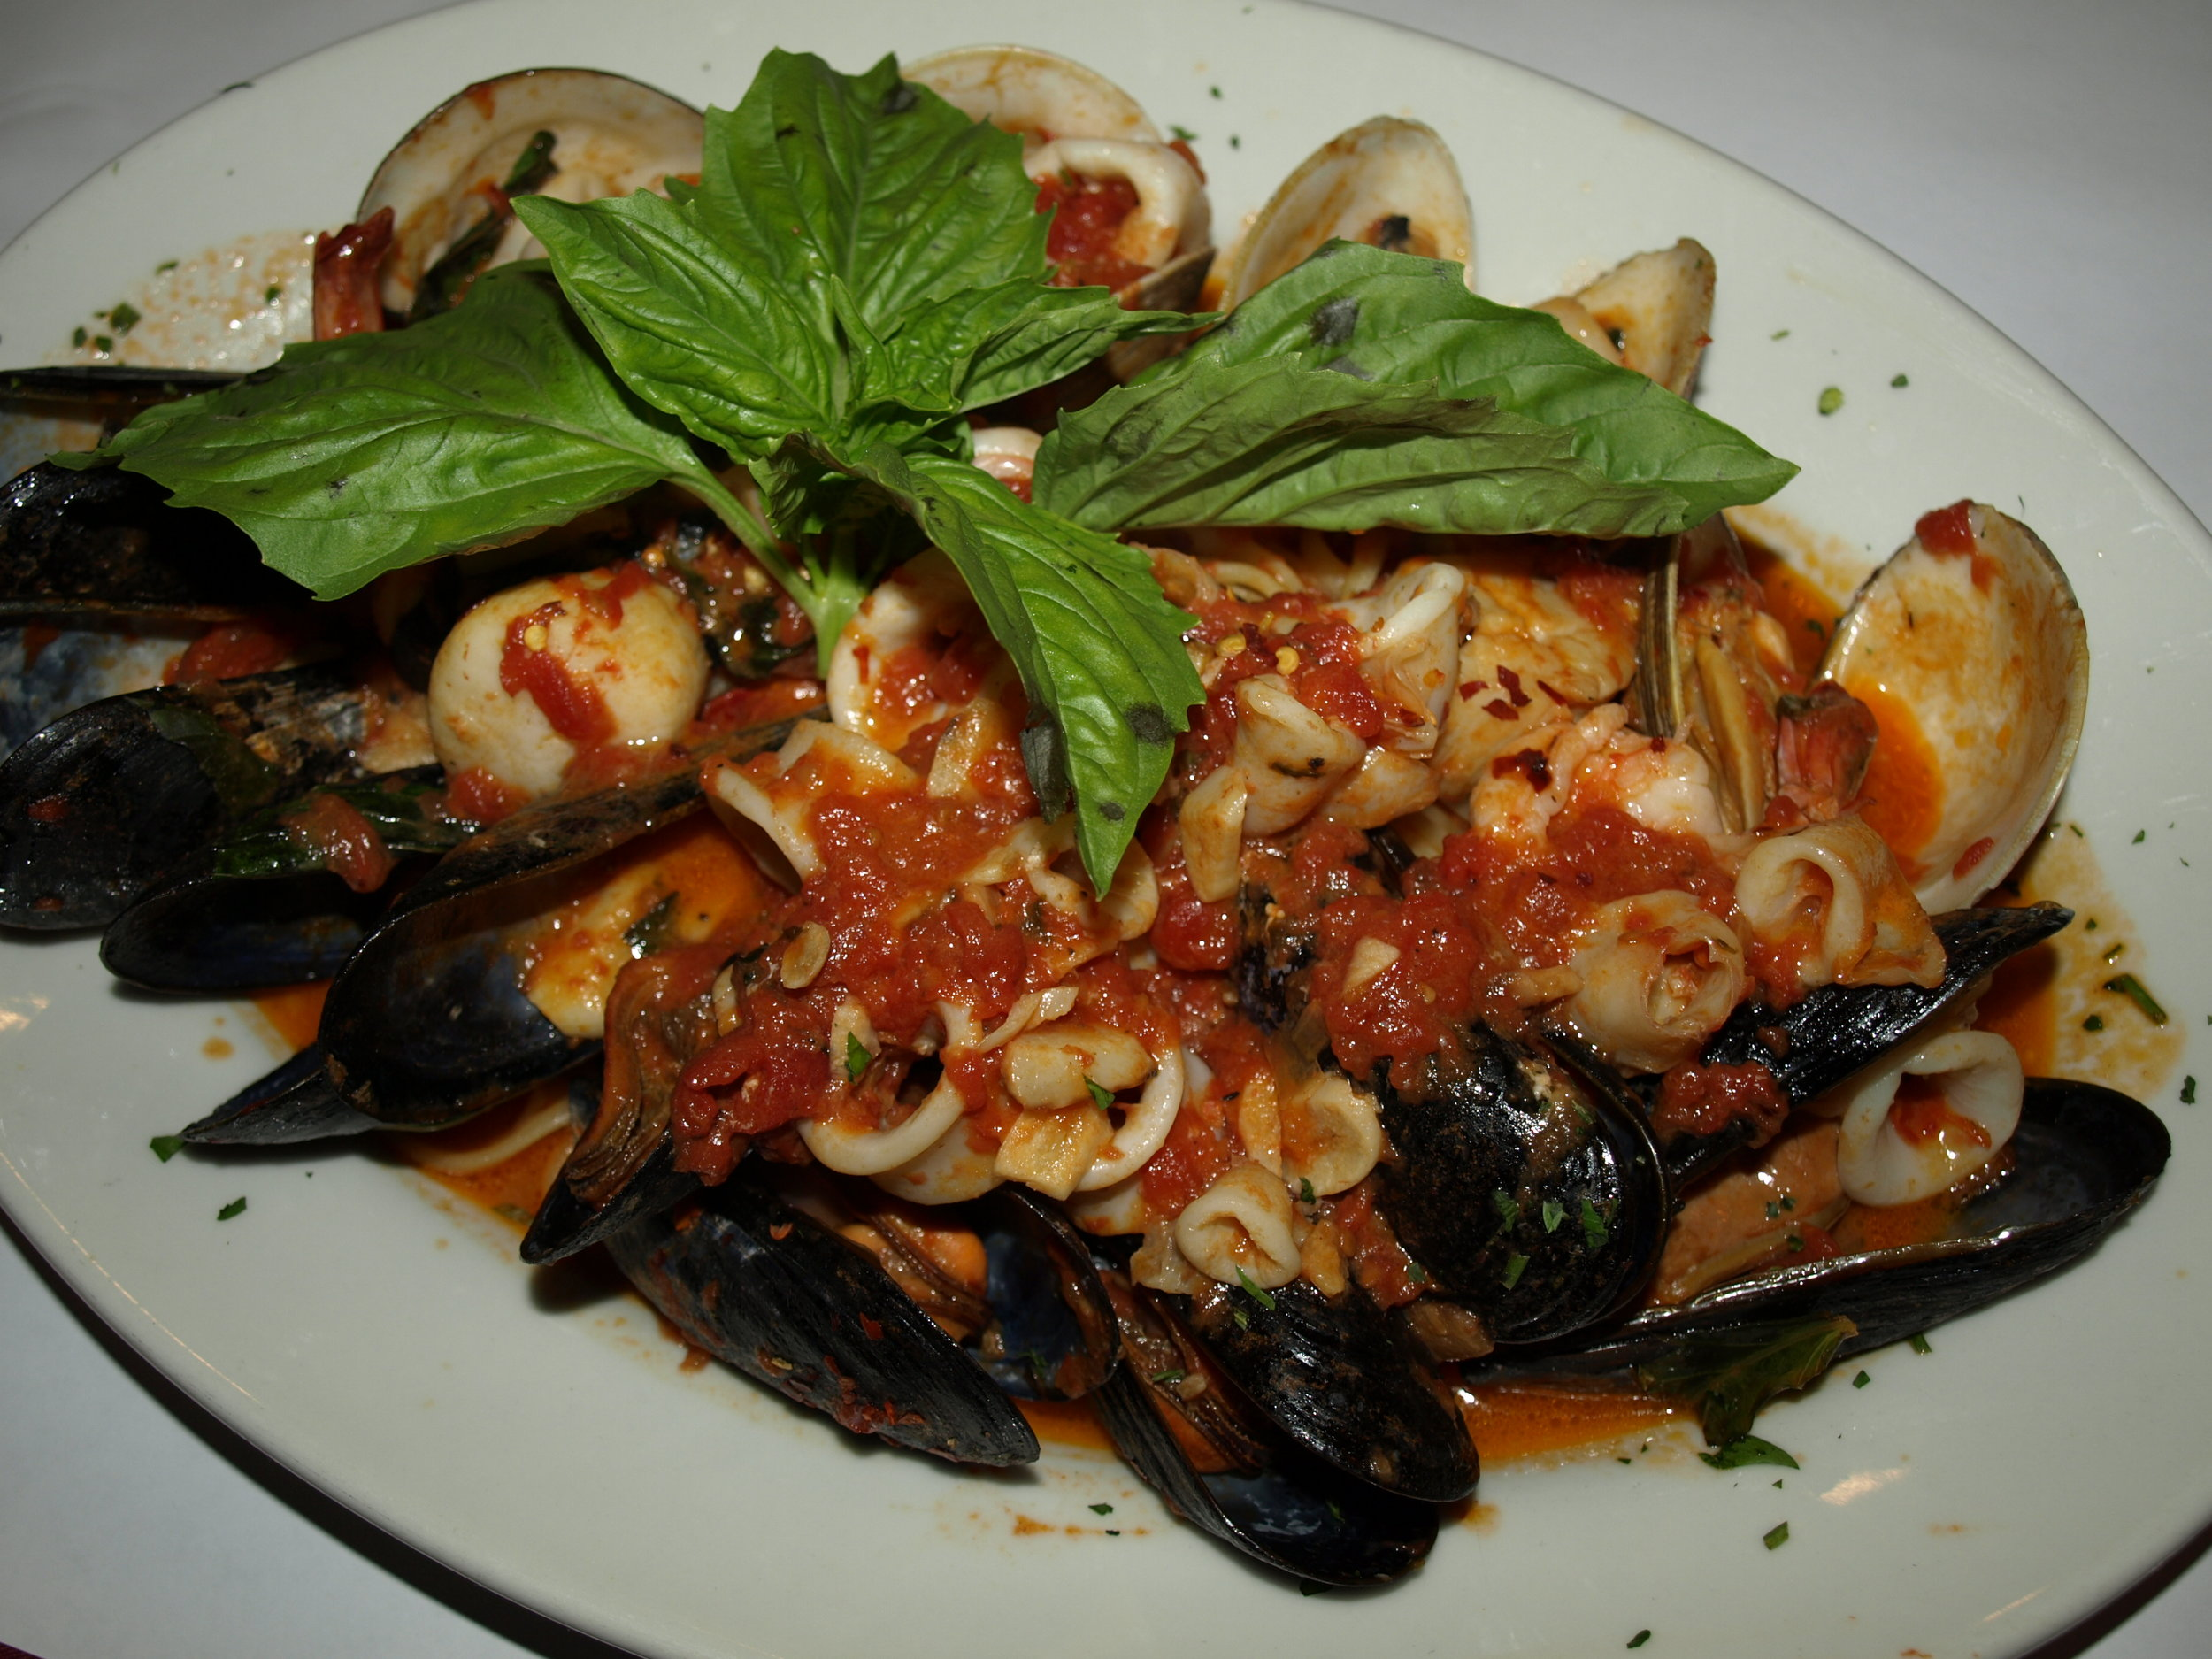 Seafood Fra Diavolo ($26.95) features a heaping platter of shrimp, mussels, clams, calamari and scallops sautéed in a spicy fra diavolo sauce on top of linguine.   Long Islander News Photo/Connor Beach